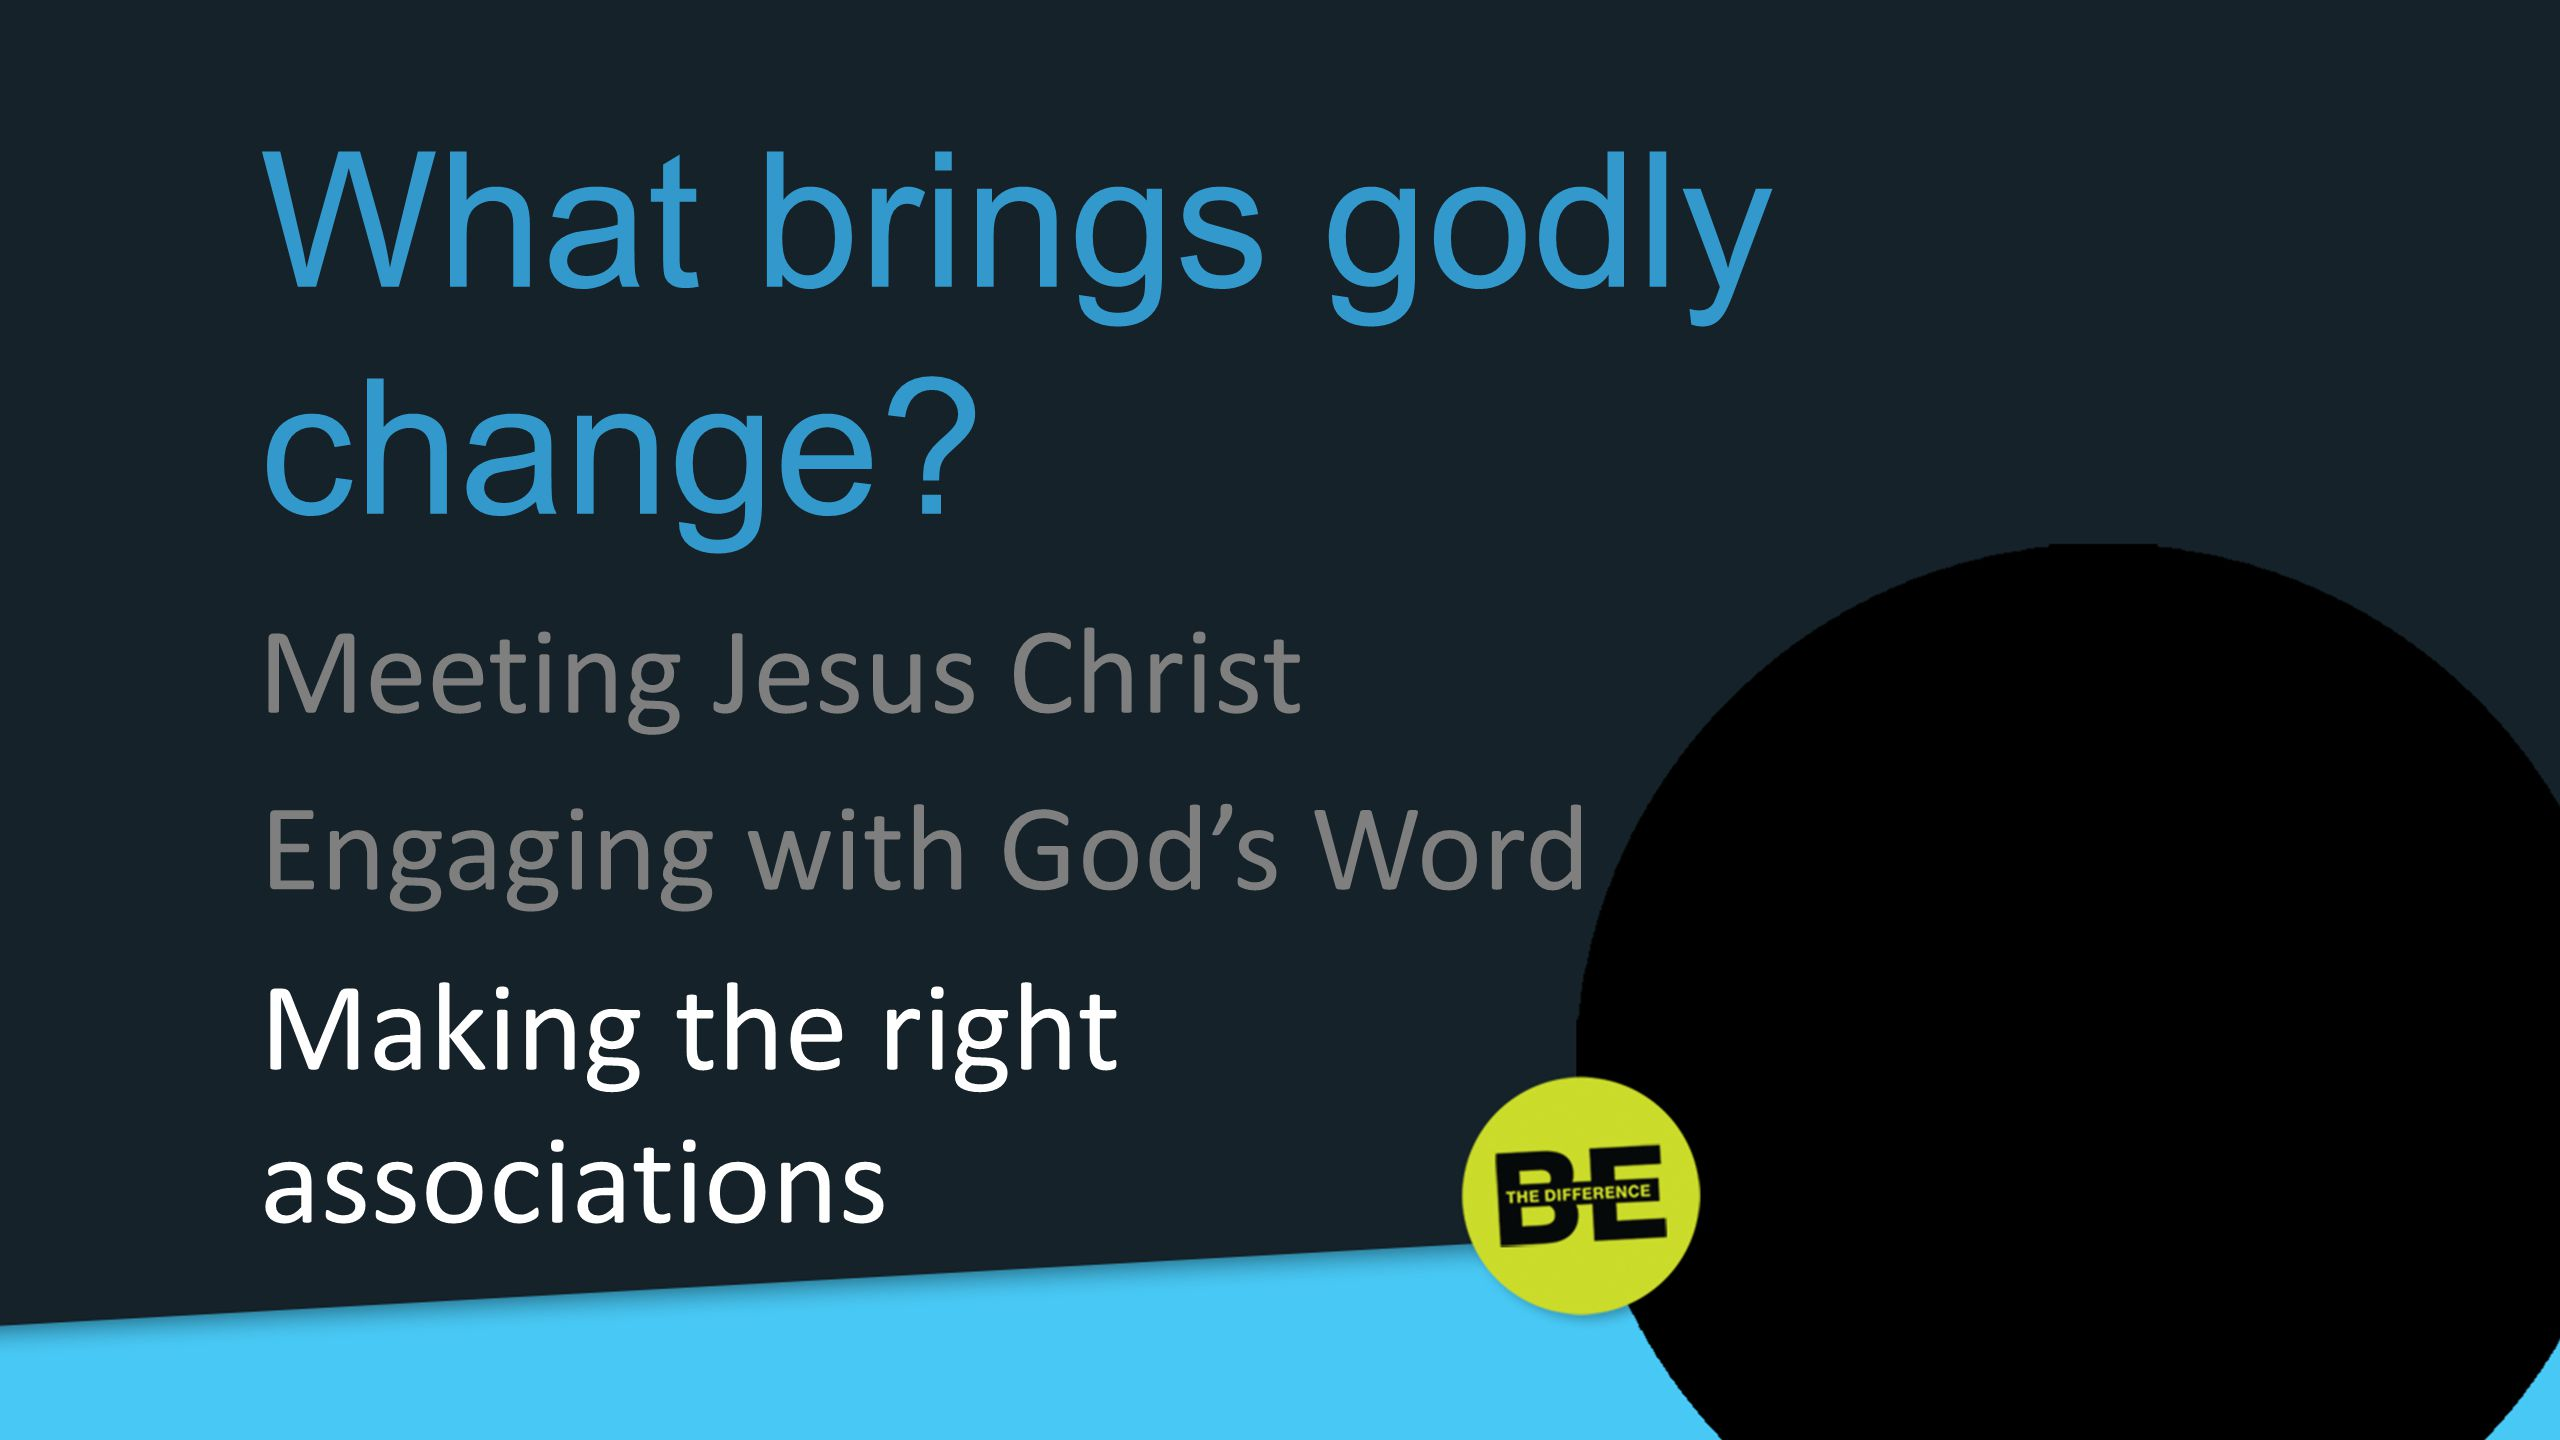 What brings godly change? Engaging with God's Word Meeting Jesus Christ Making the right associations